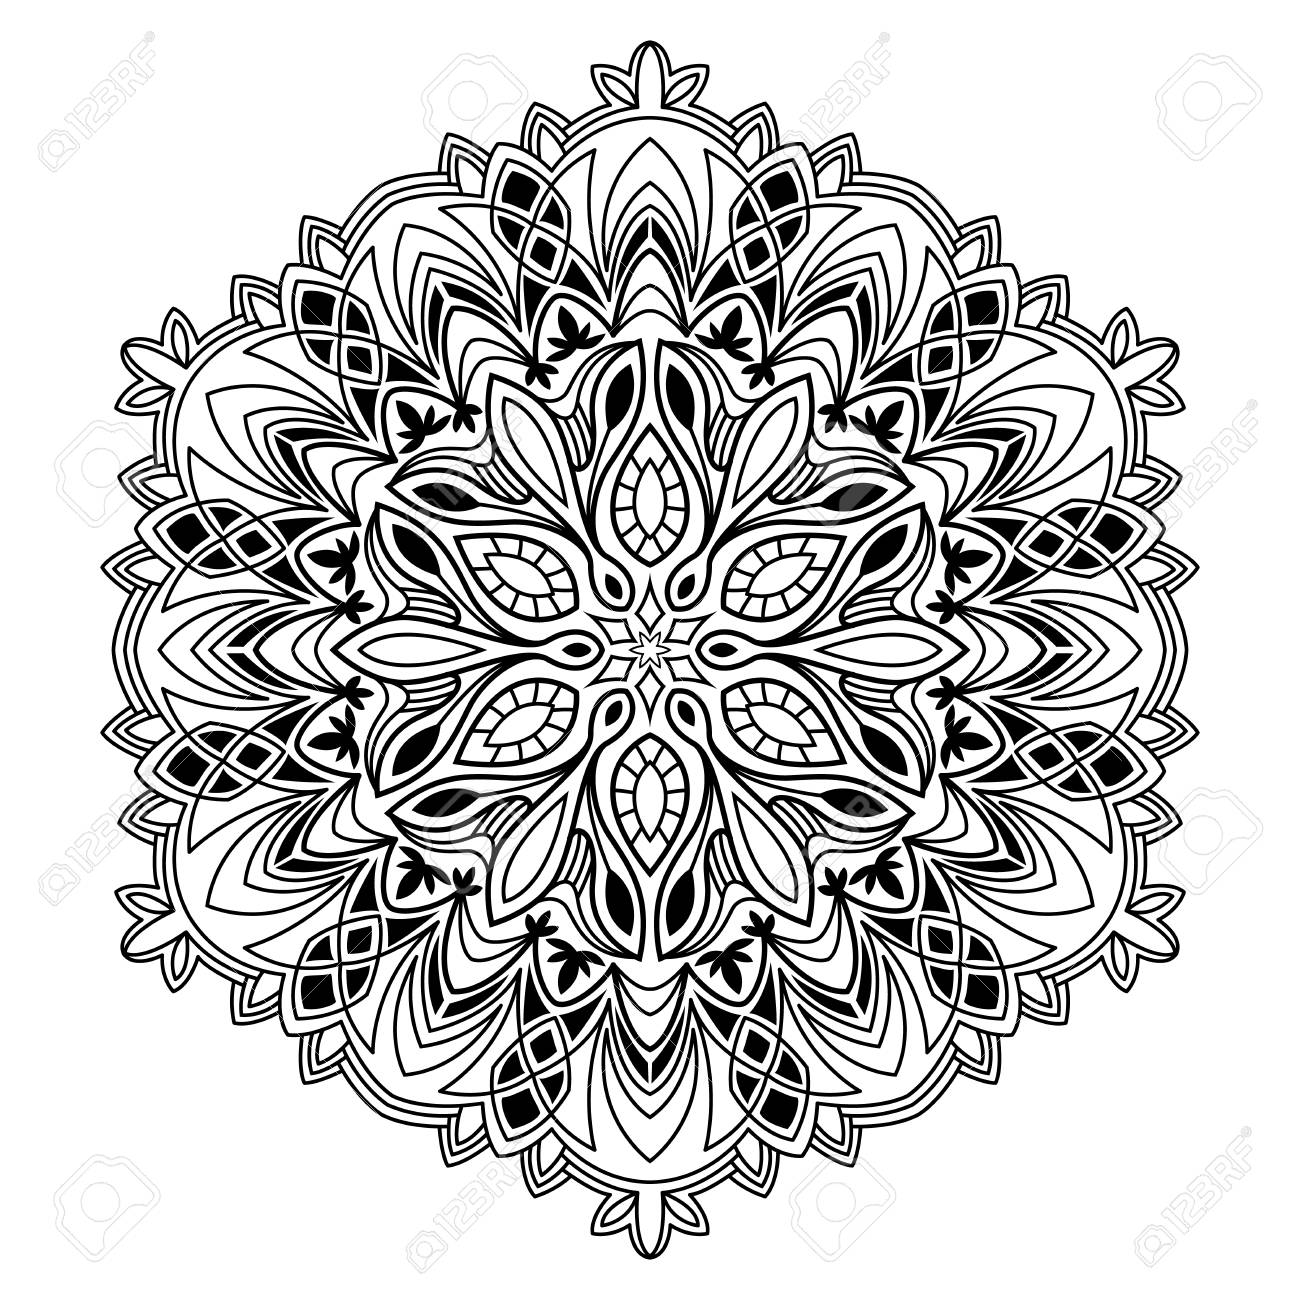 Complicated Mandala Coloring Book Anti Stress Therapy Pattern